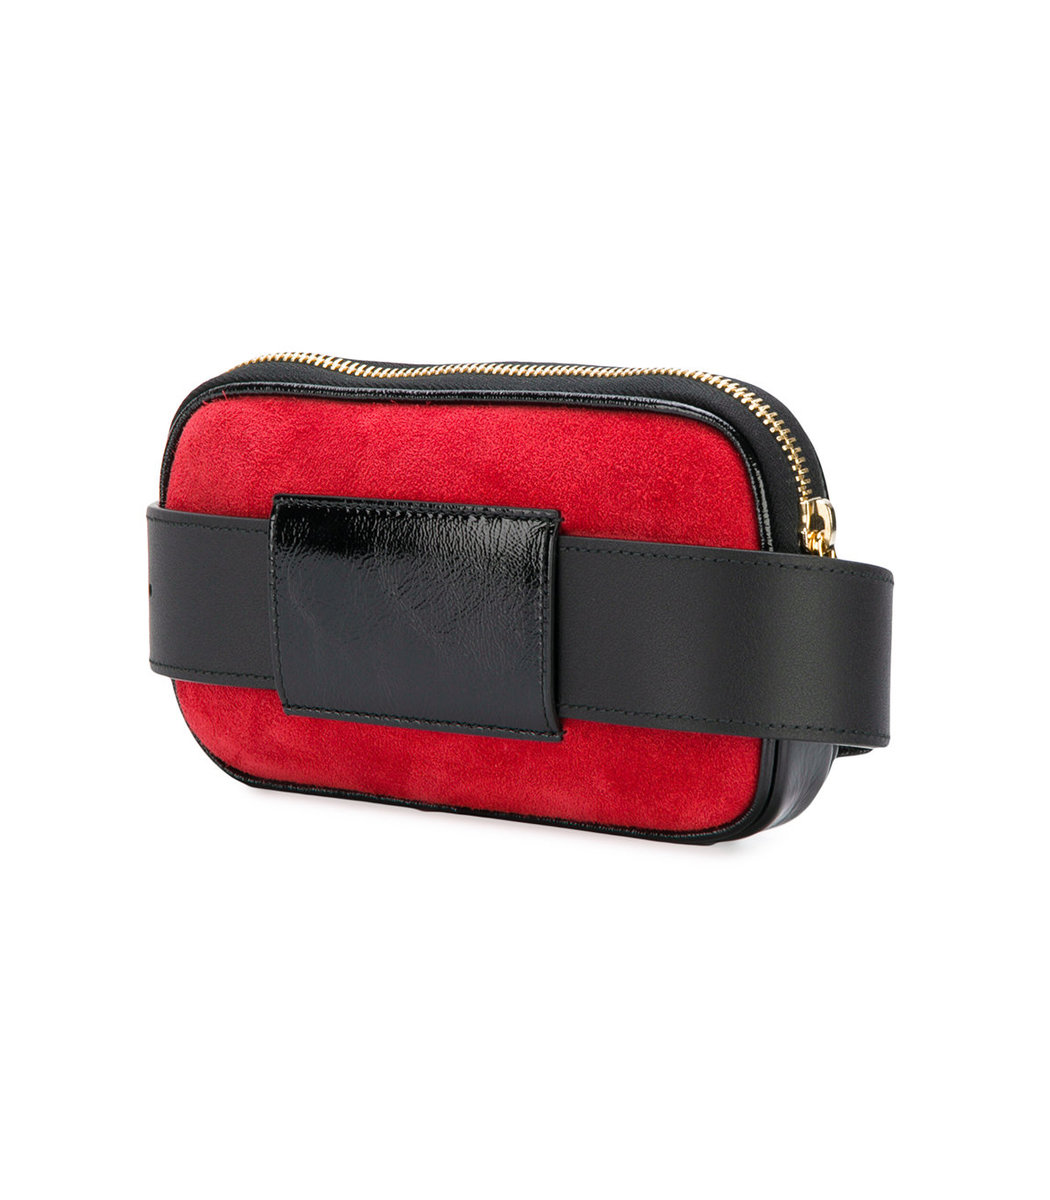 3b0c984c8934 Gucci Bag Belt Red | Stanford Center for Opportunity Policy in Education